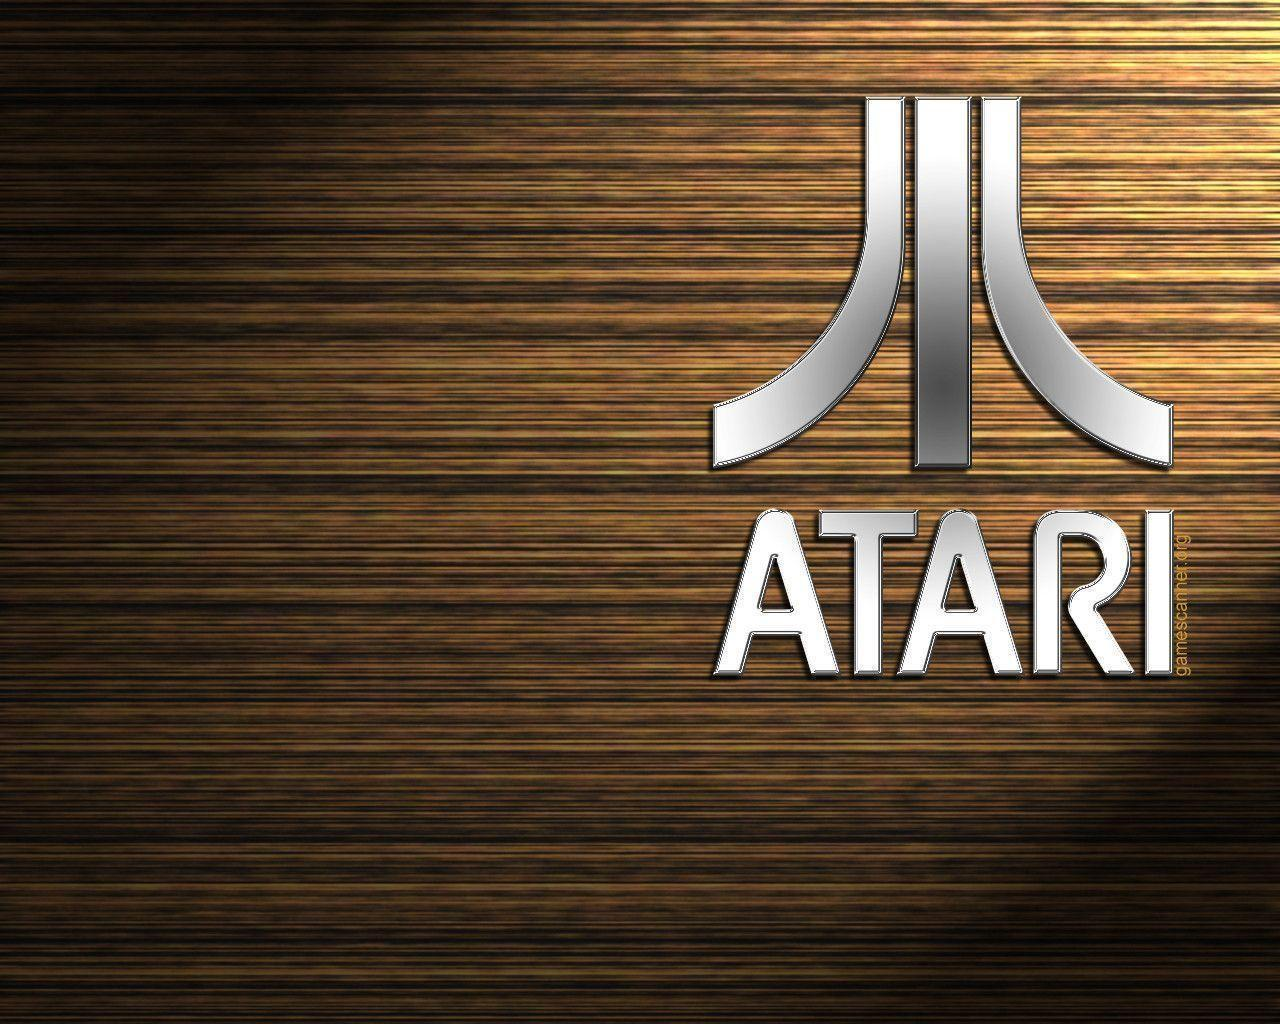 Atari Wallpaper - Video Games Wallpaper (5446125) - Fanpop